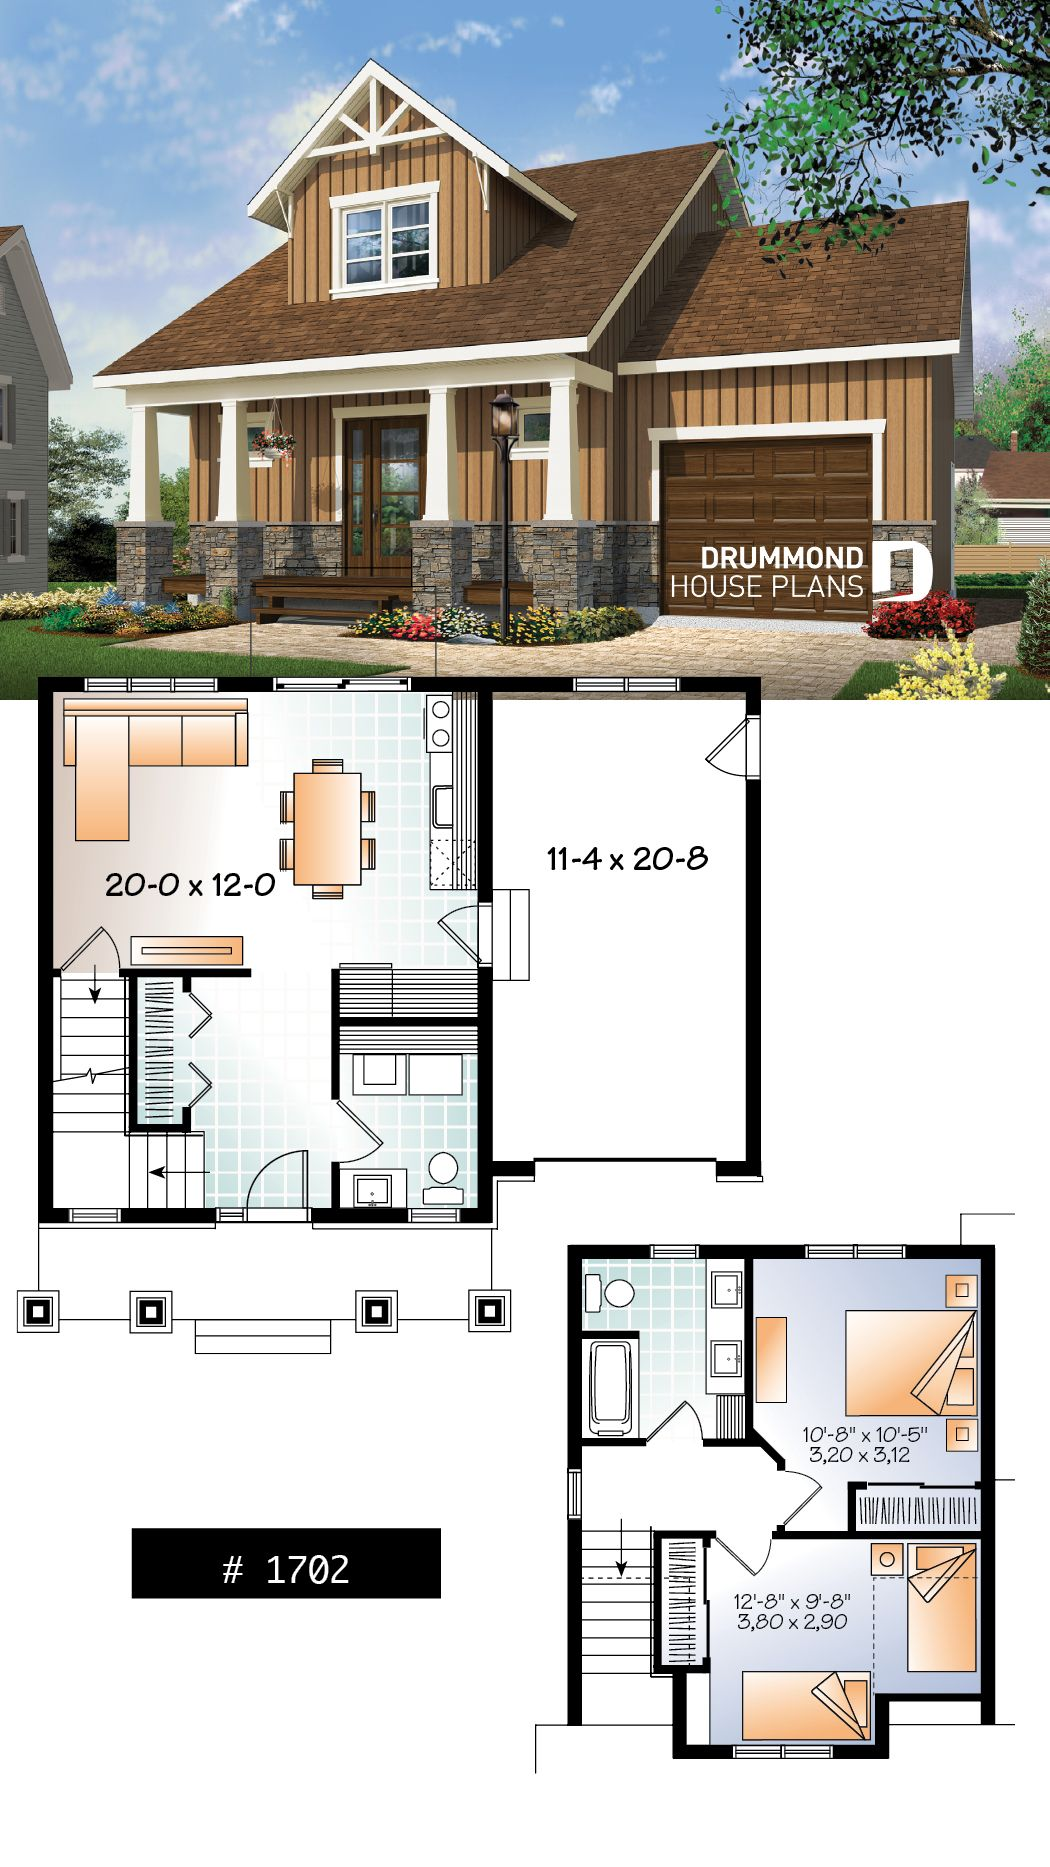 Discover The Plan 1702 Delphine Which Will Please You For Its 2 Bedrooms And For Its Farmhouse Styles Craftsman House Plans Sims House Plans Small House Plans